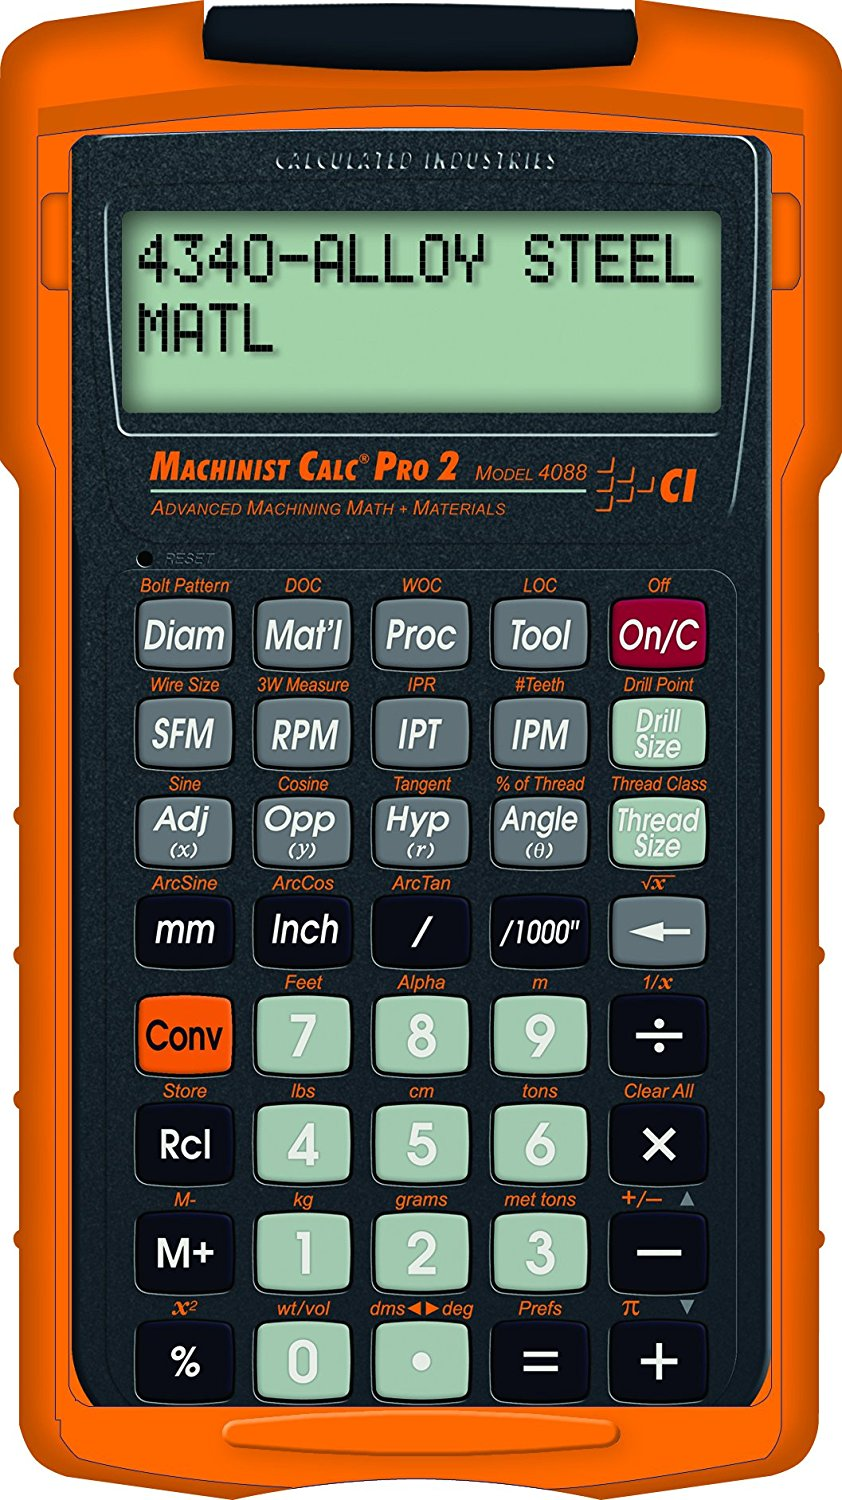 Machinist Calculator Pro 2